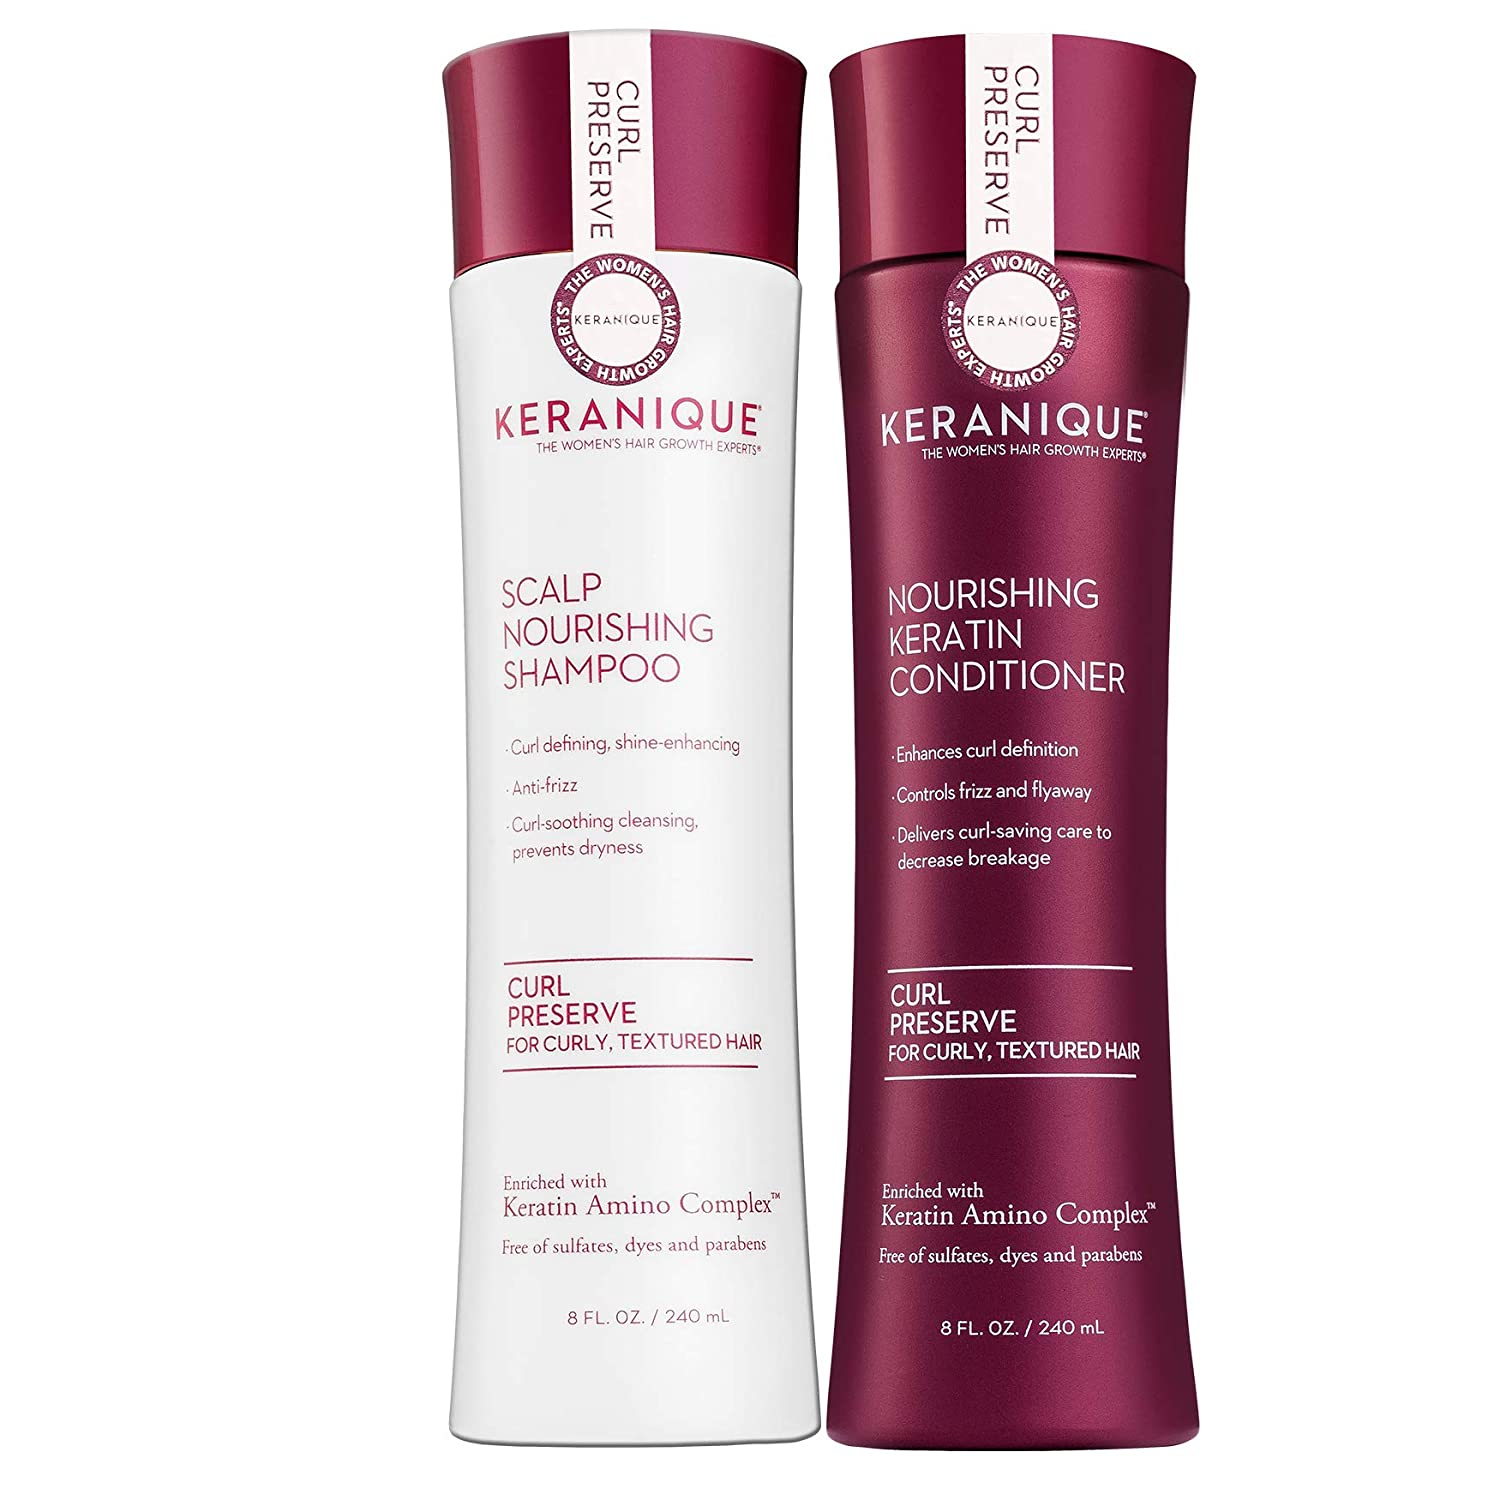 Keranique-Curl-Preserve-Scalp-Nourishing-Shampoo-Conditioner